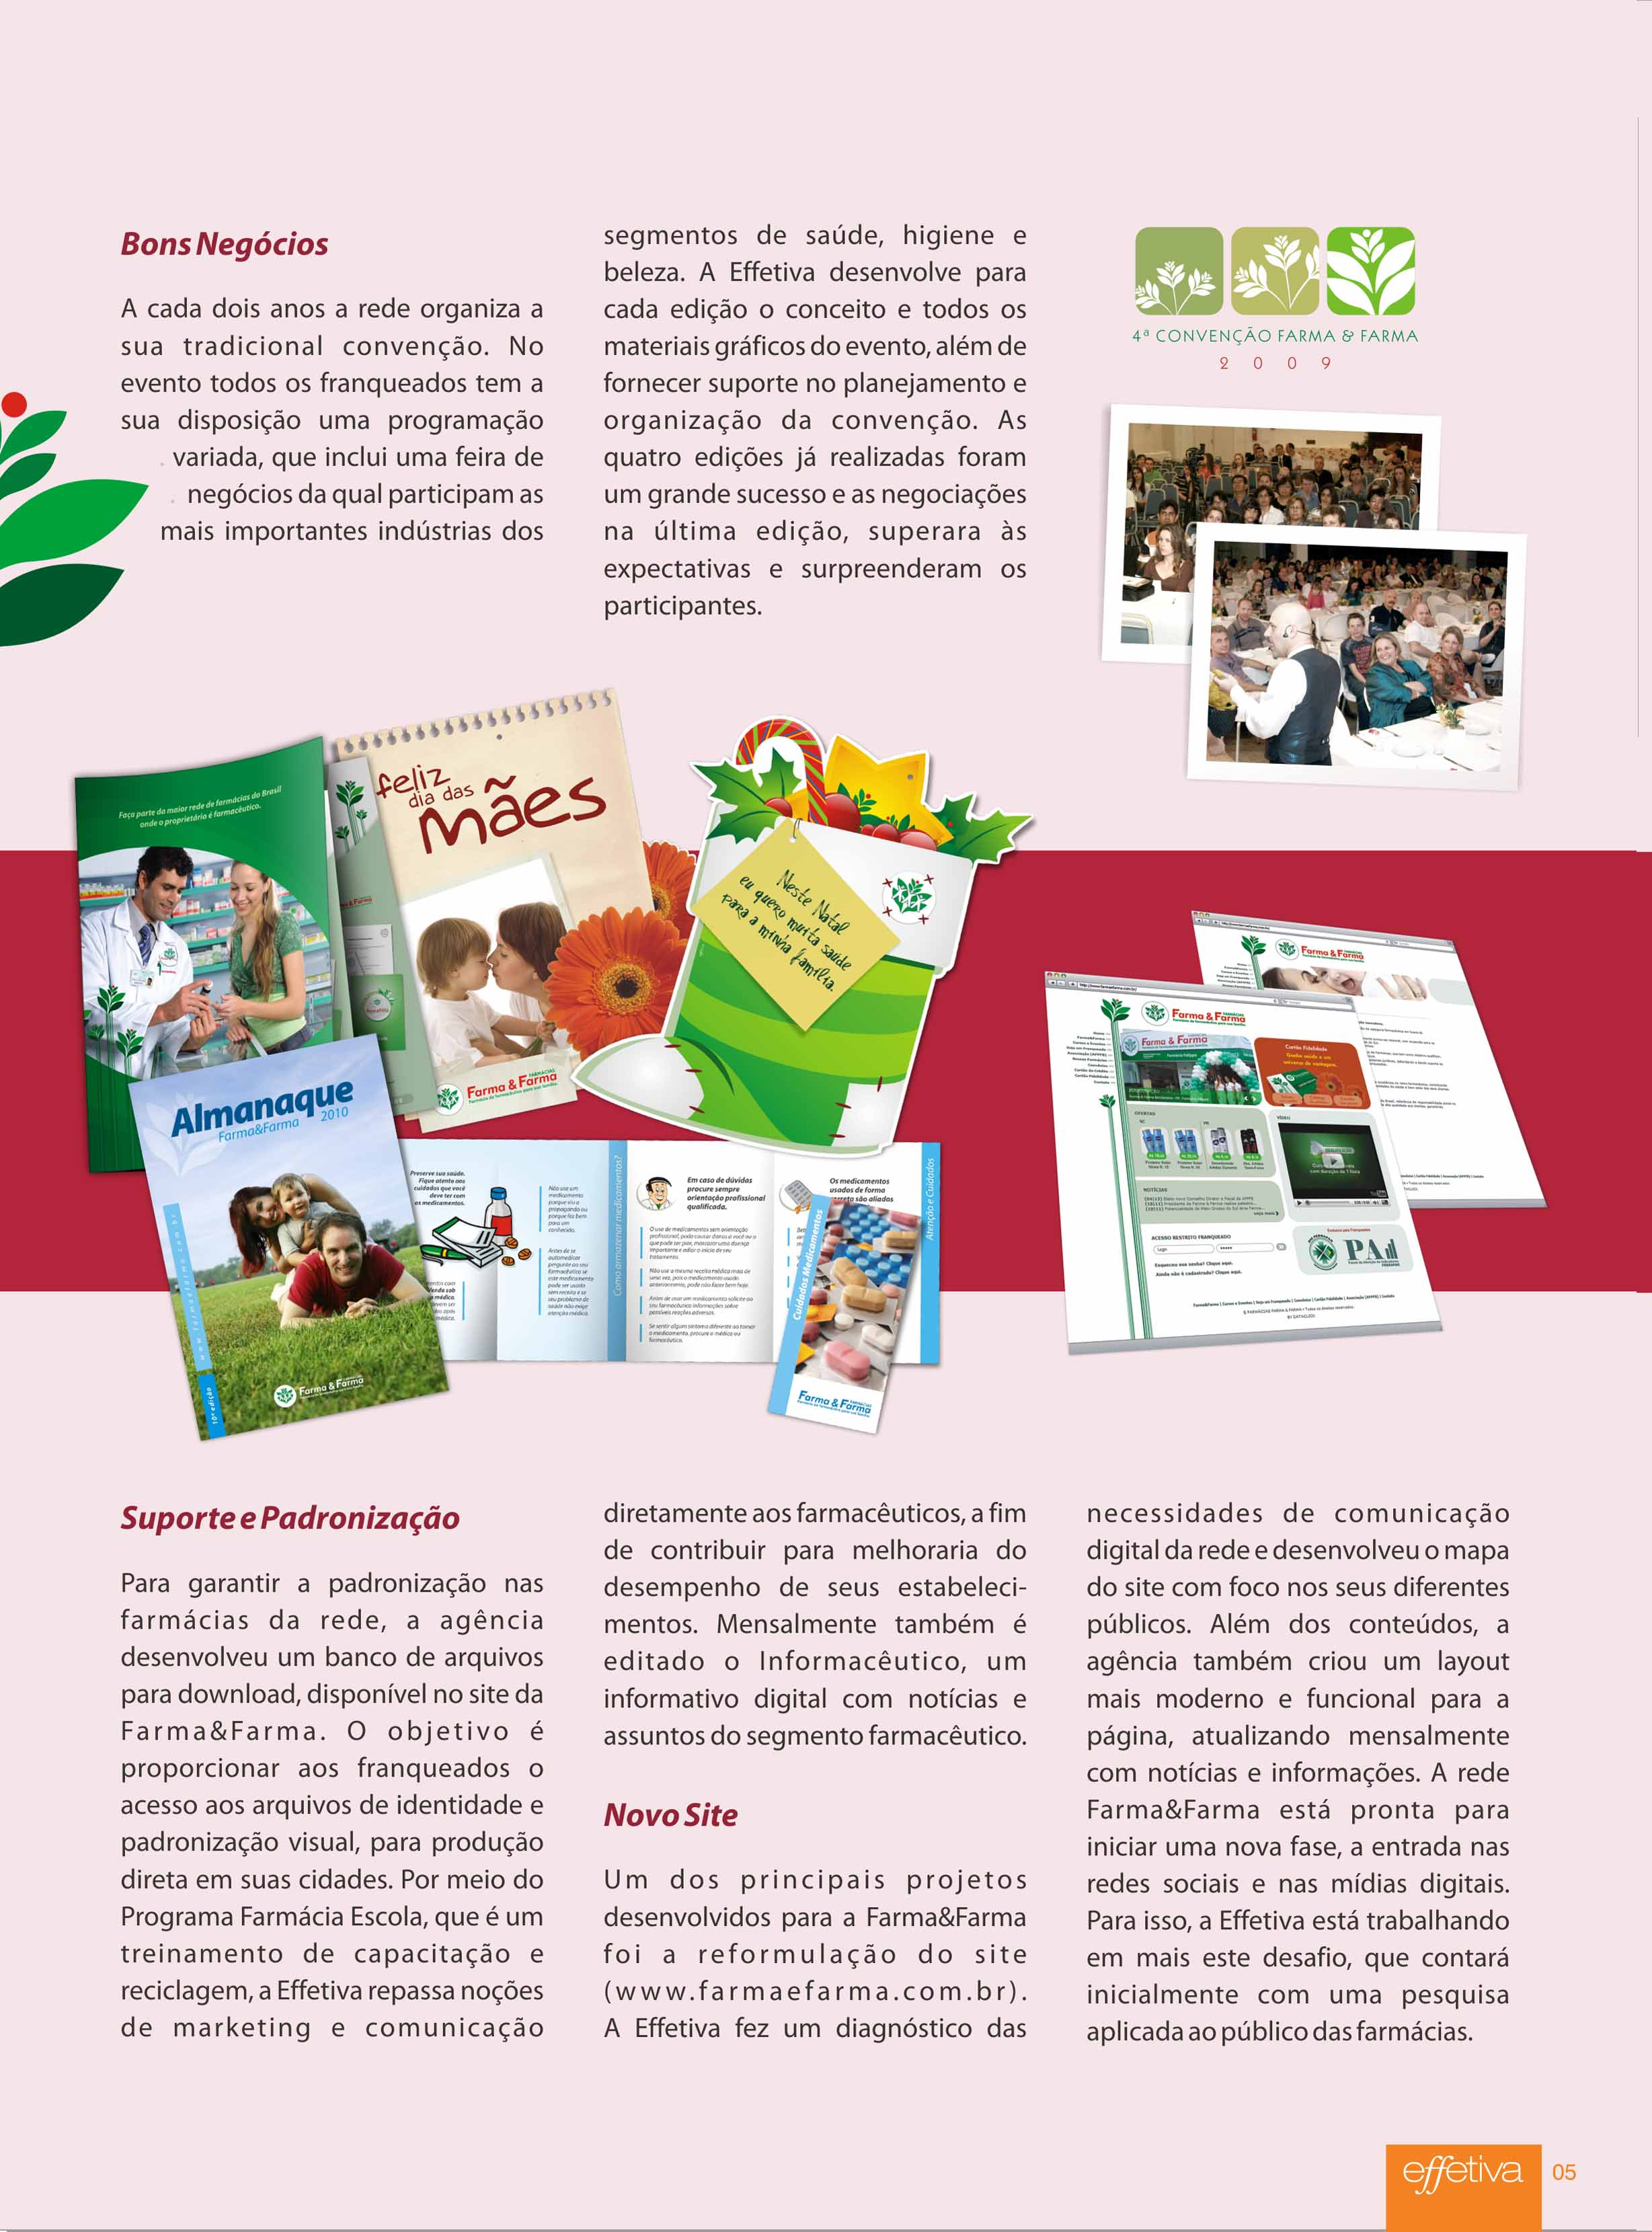 Effetiva_-_Revista_-_Página_05_-_Case_Farma